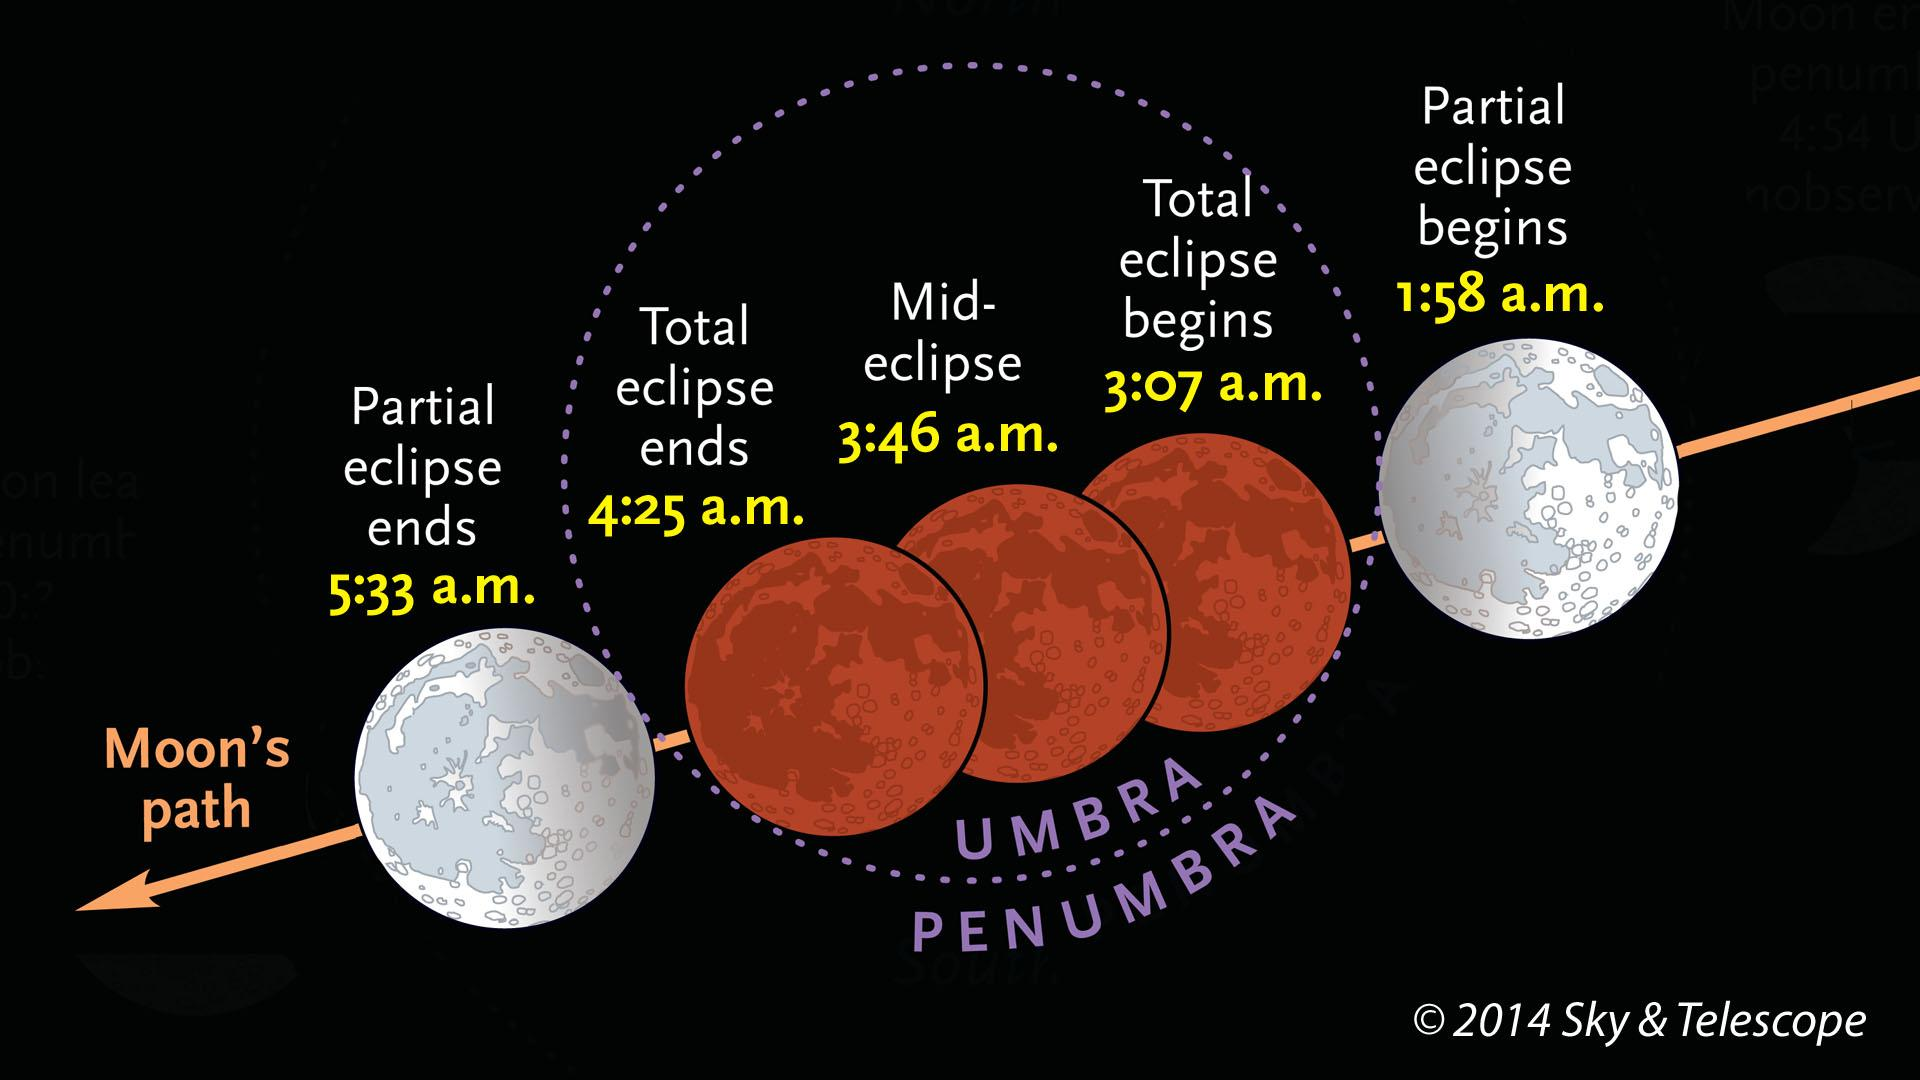 Image: Eclipse times